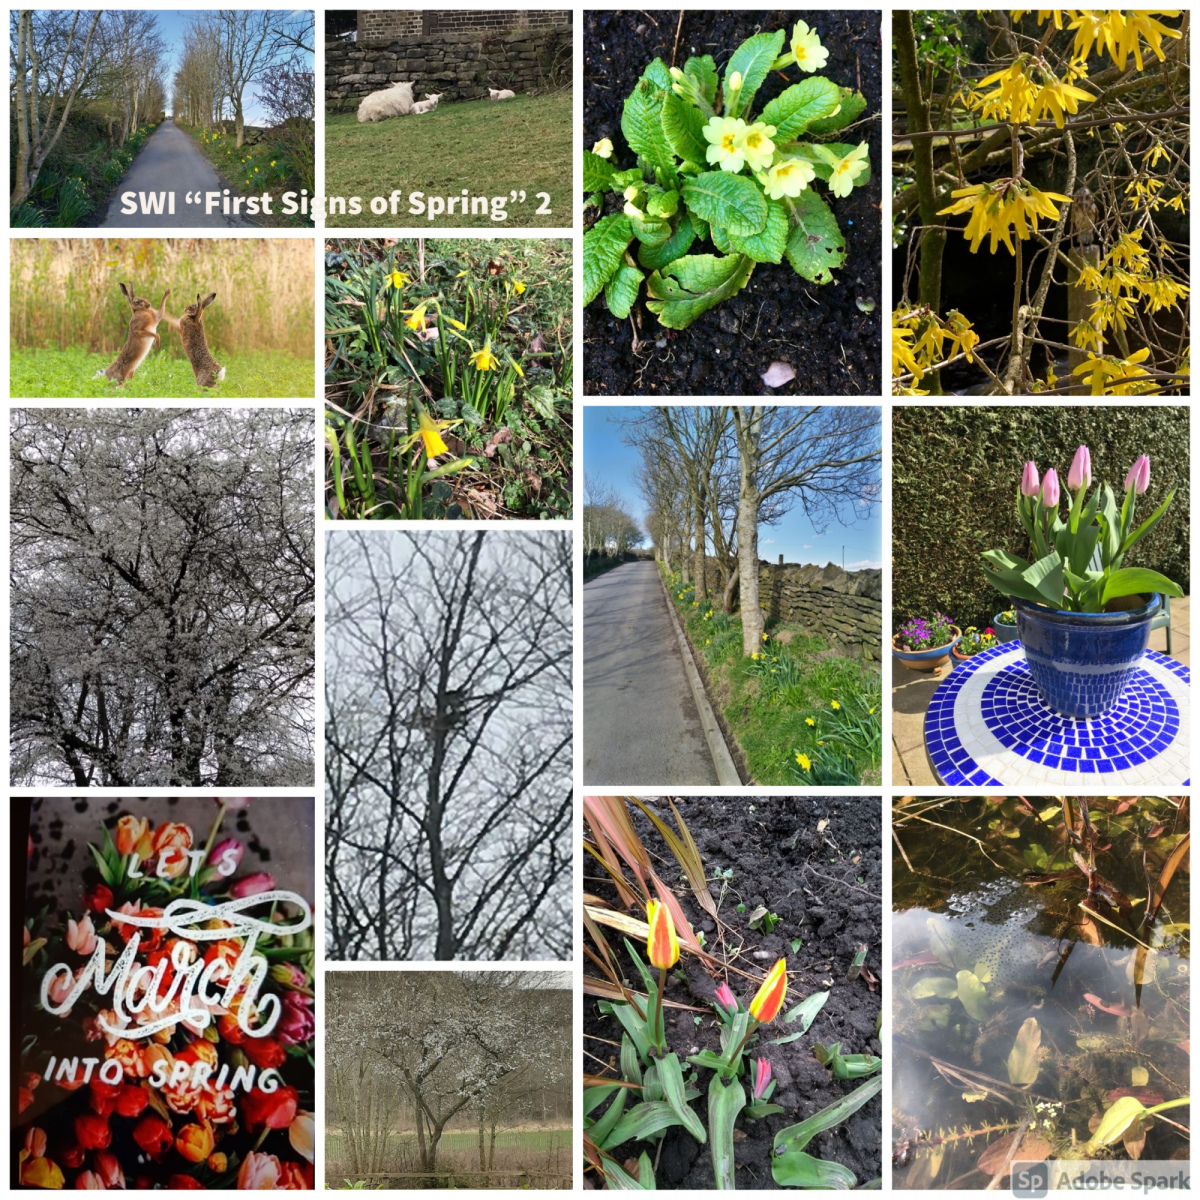 SWI-First-Signs-of-Spring-part2